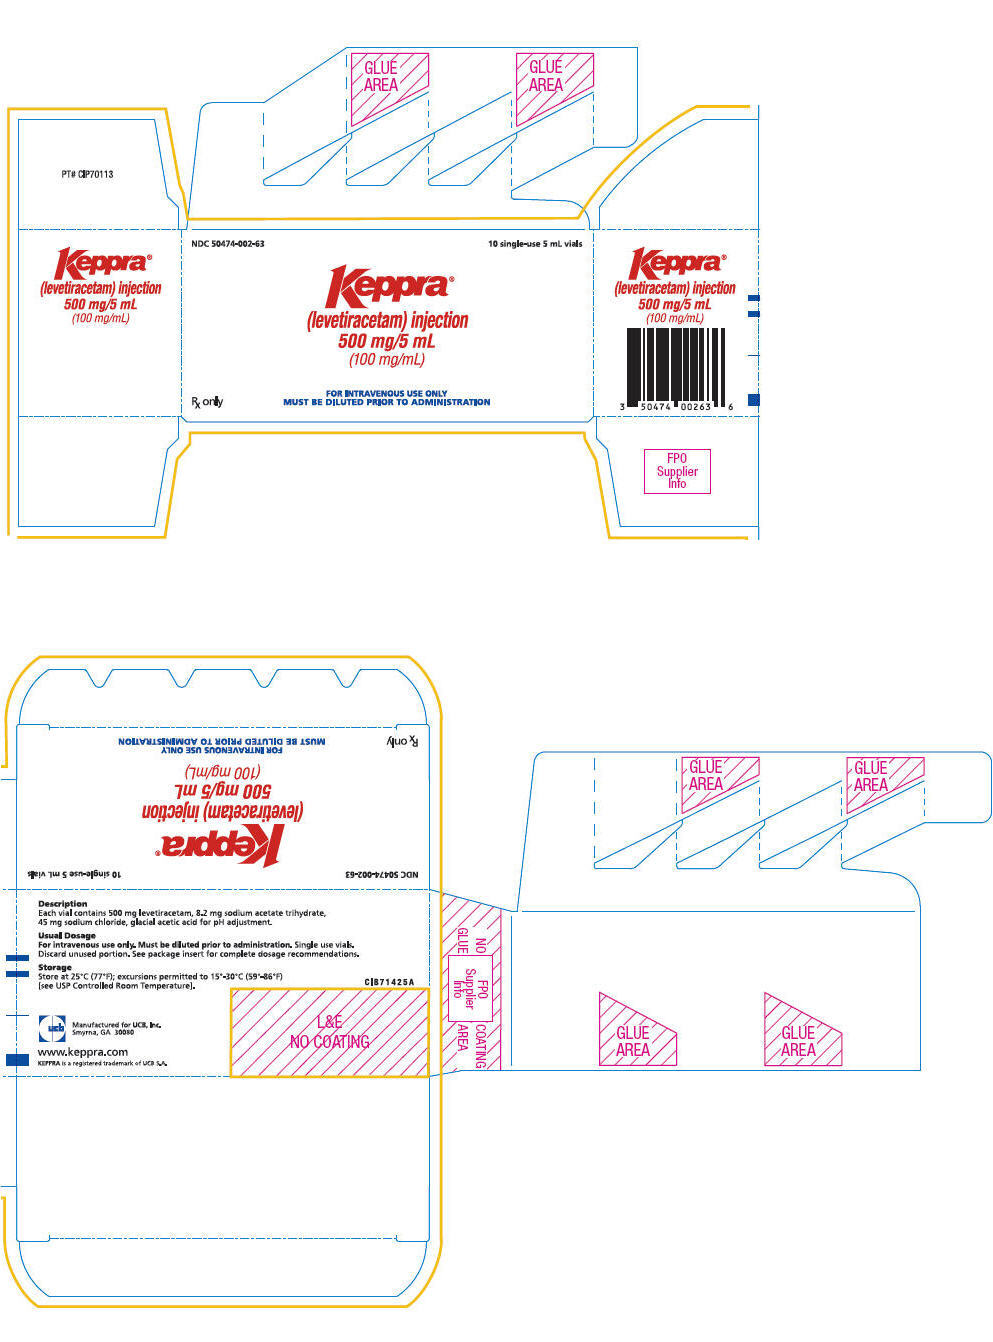 keppra injection package insert pdf